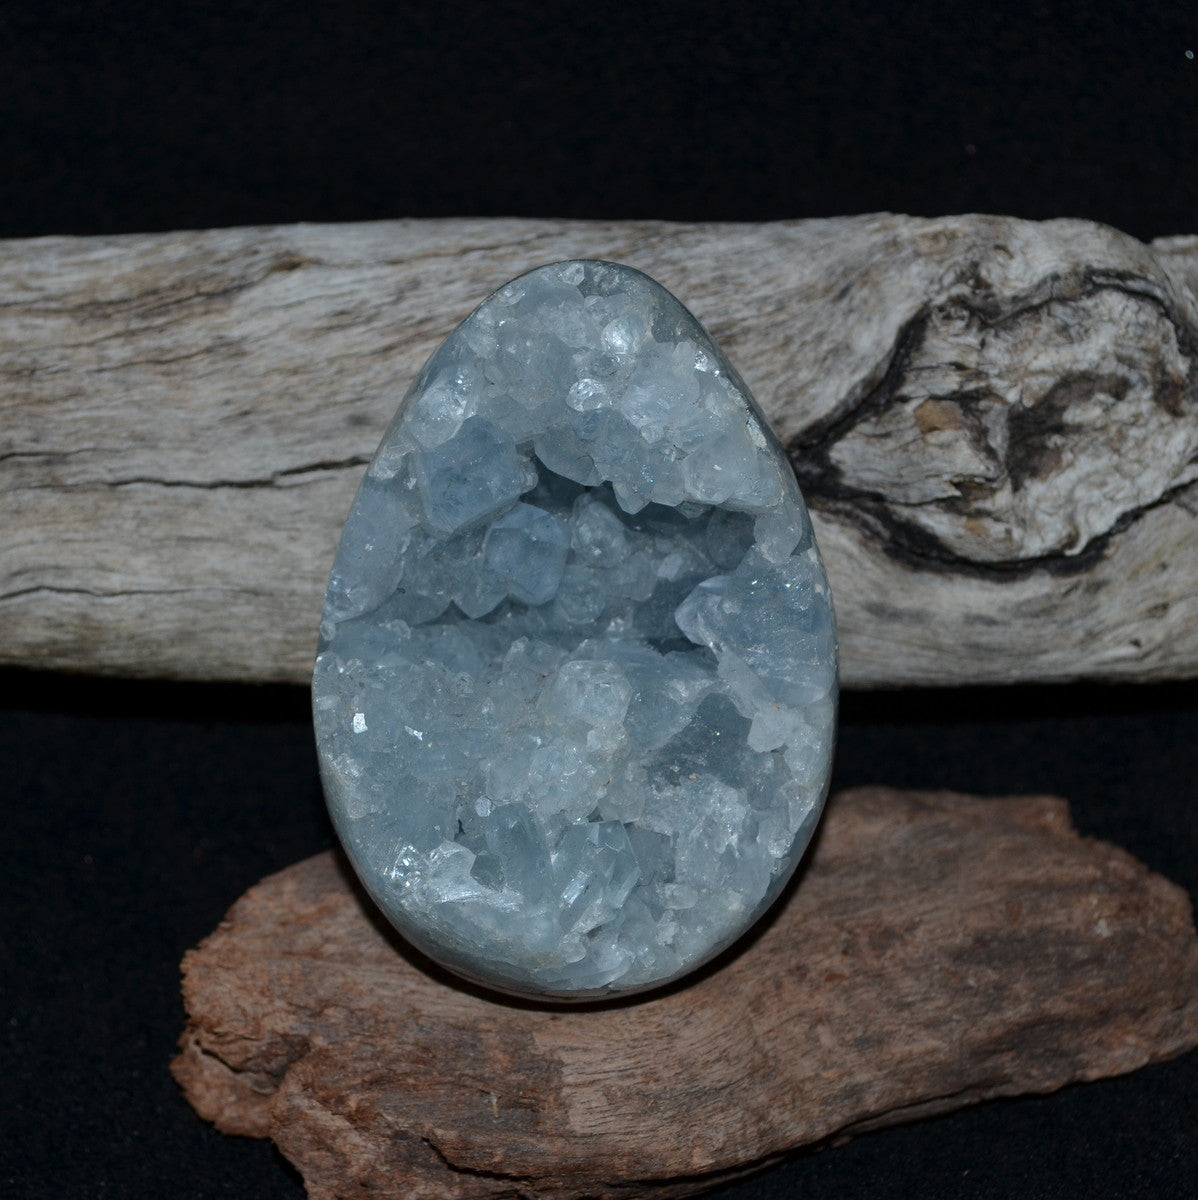 Celestite Large Geode Egg Madagascar - Celestial Realm Angels Harmony Calm - Shop now at Illiom Crystals